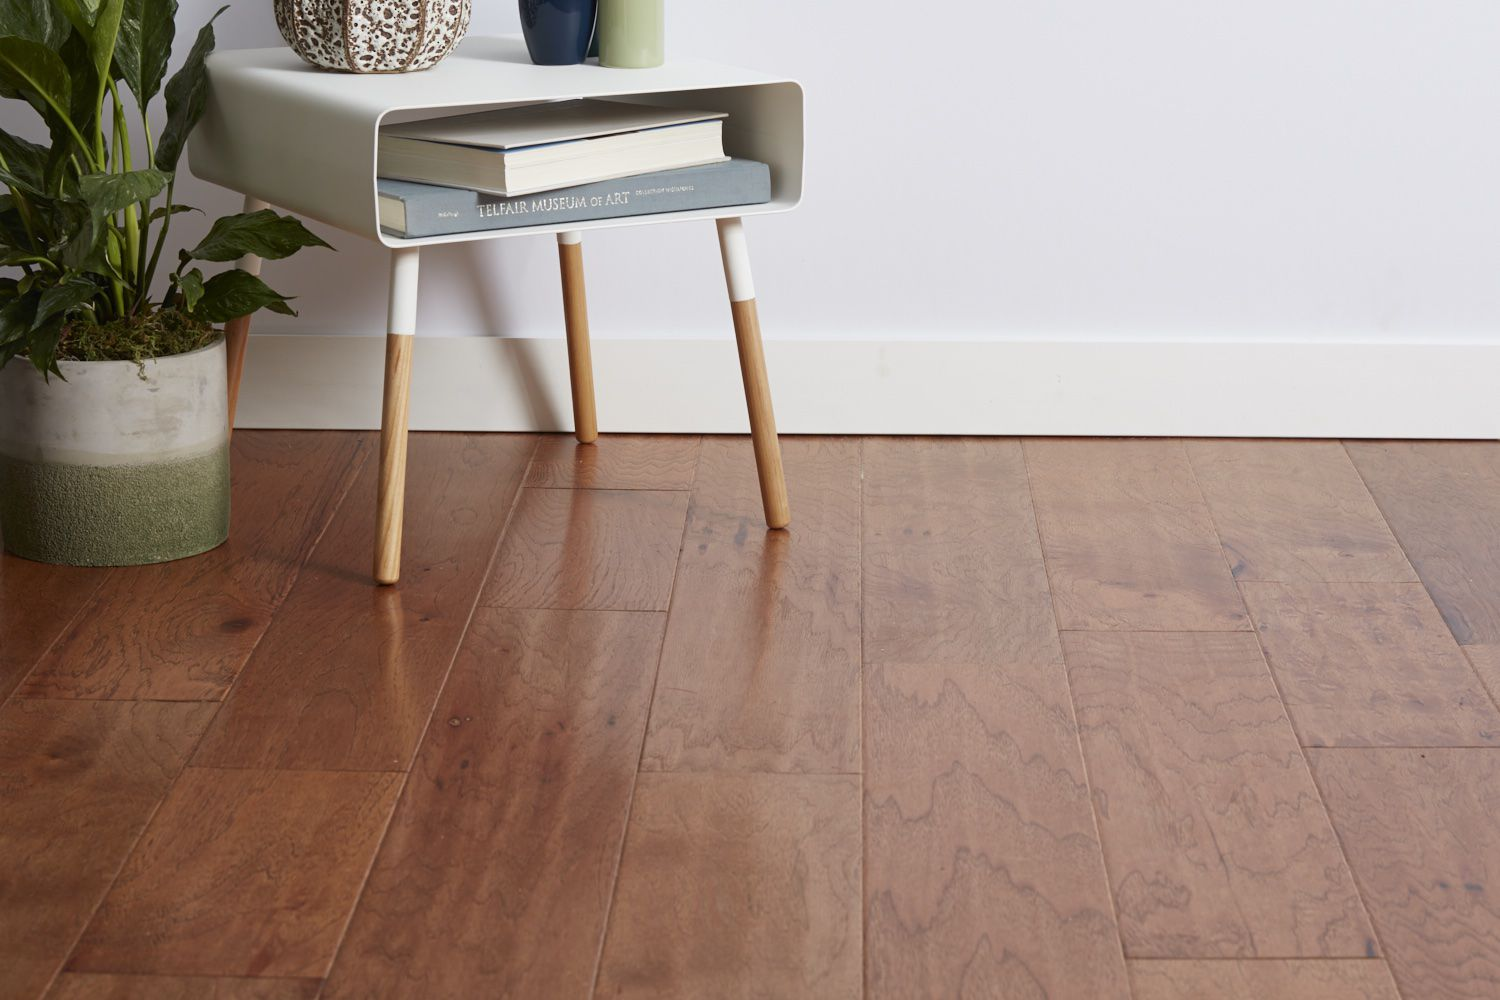 Engineered wood flooring with houseplant and side table with books